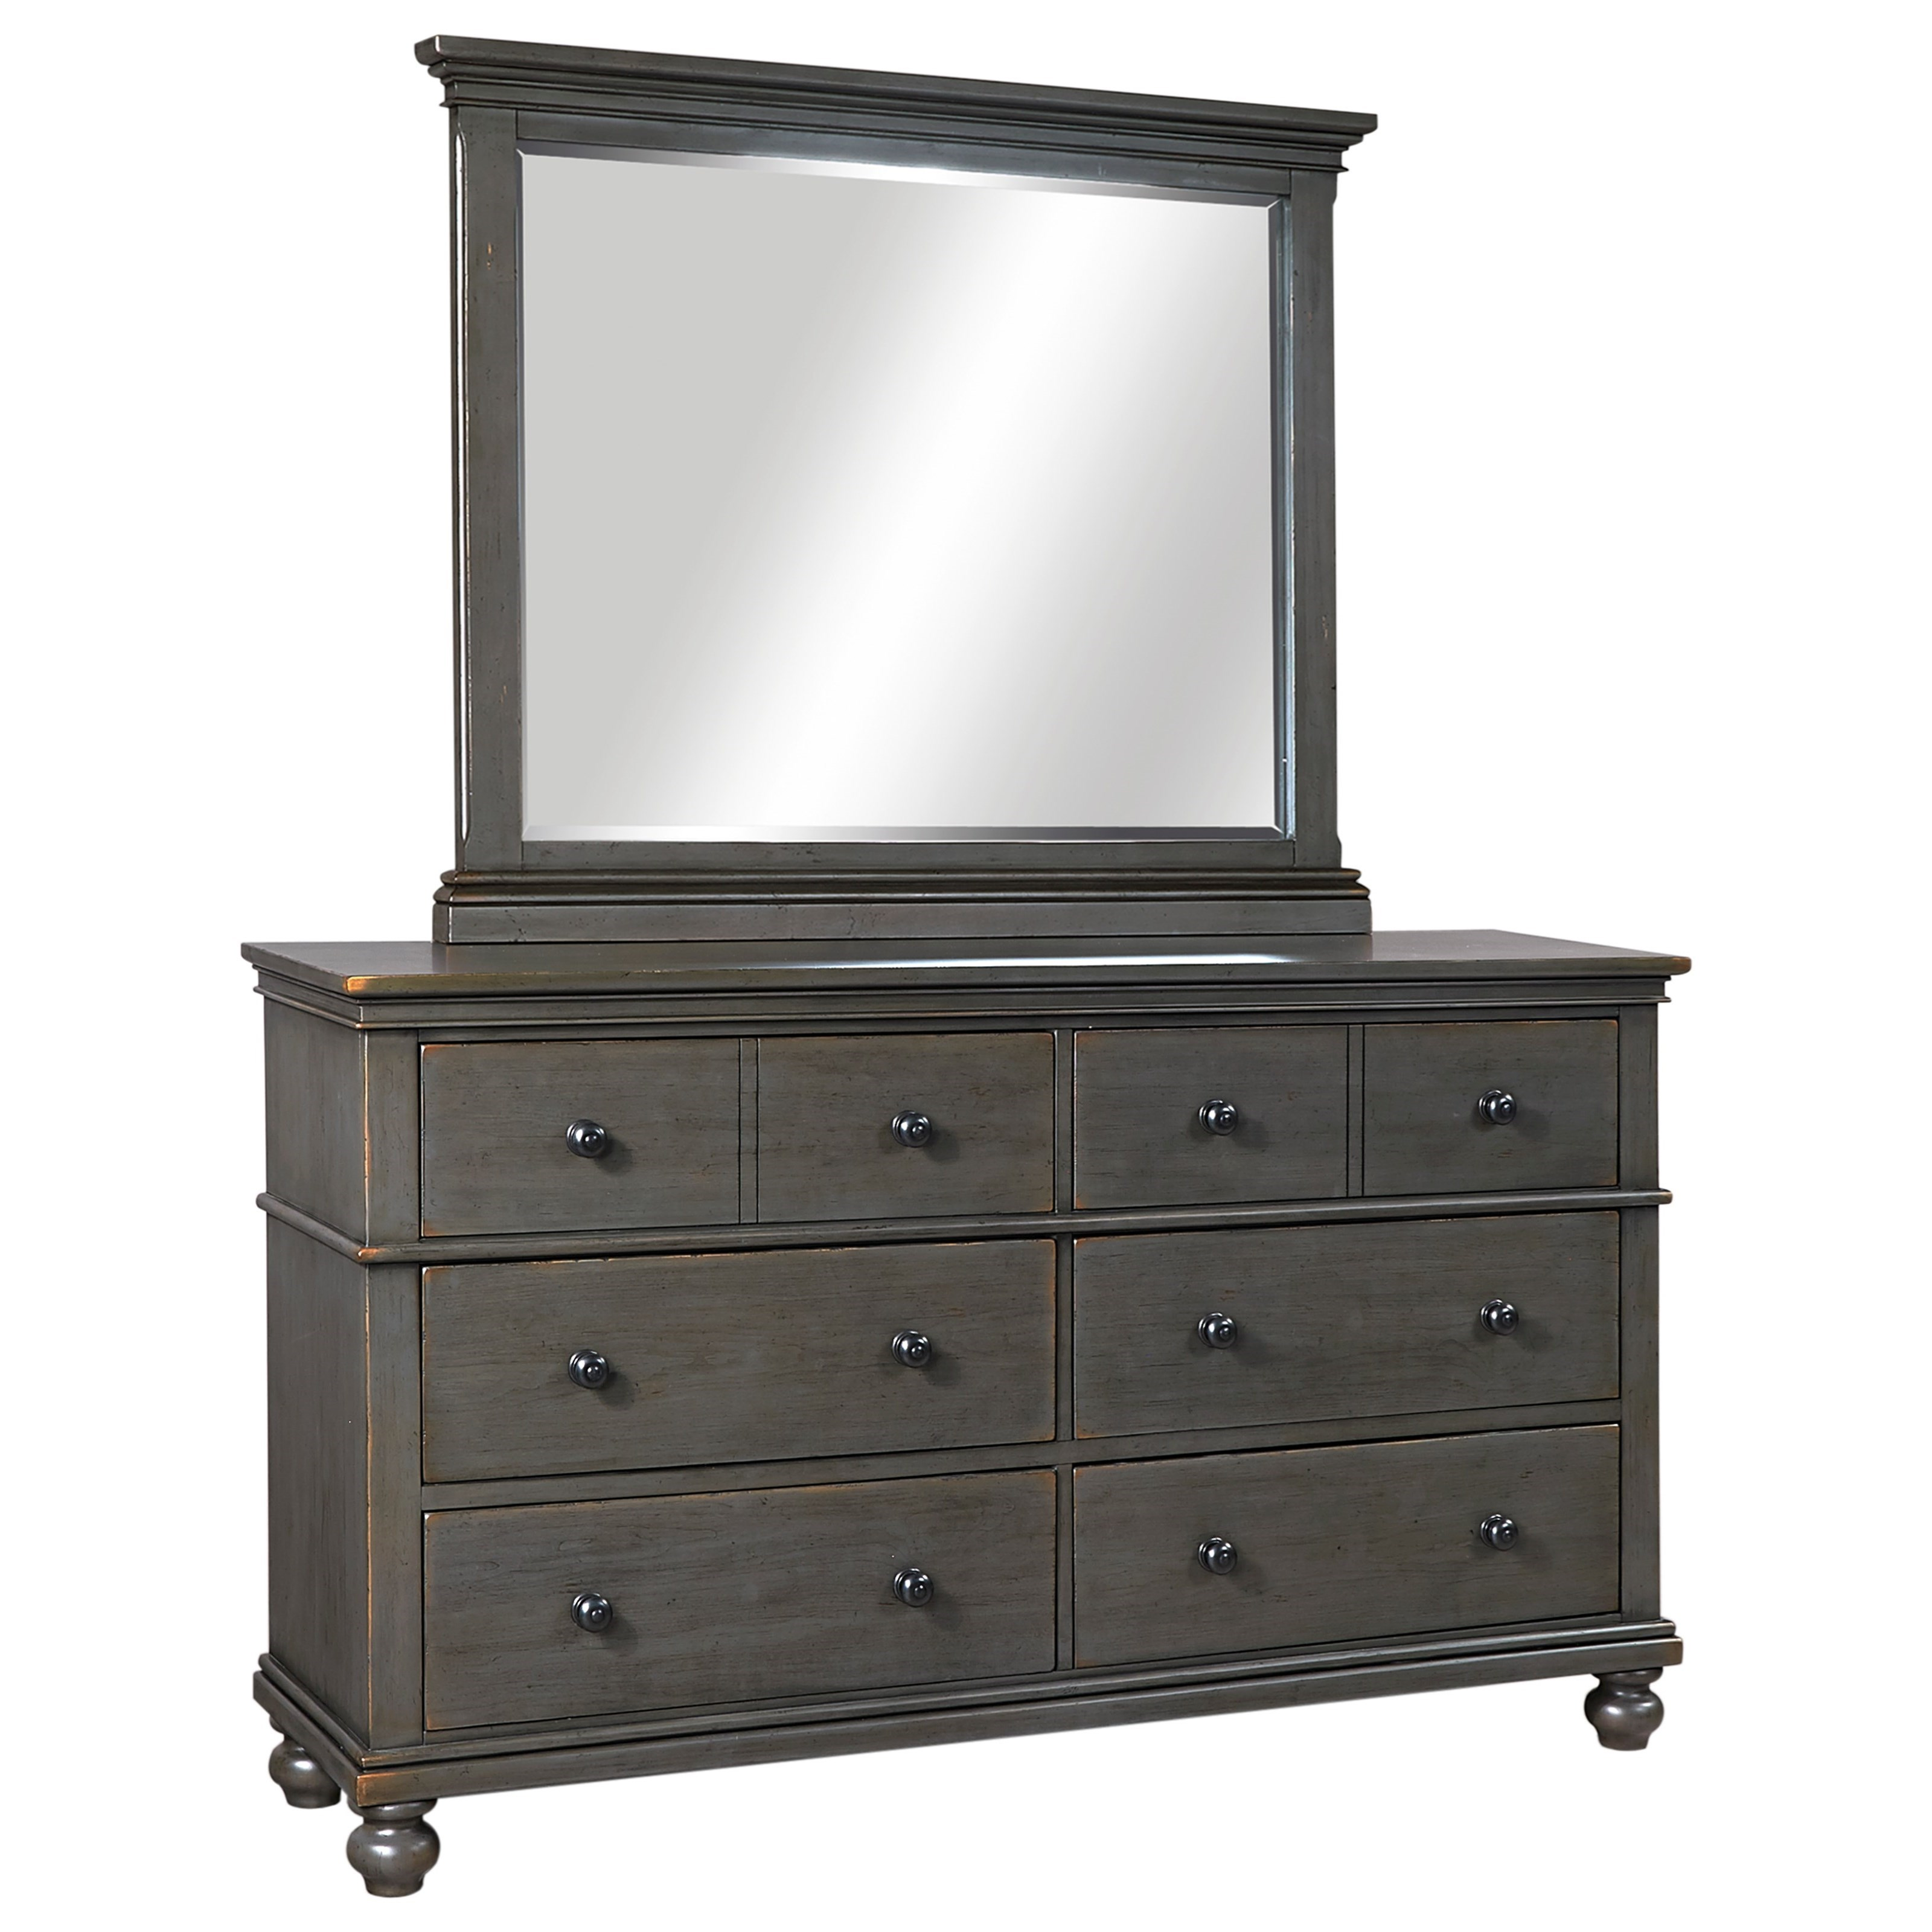 Oxford Dresser with Mirror by Aspenhome at Baer's Furniture